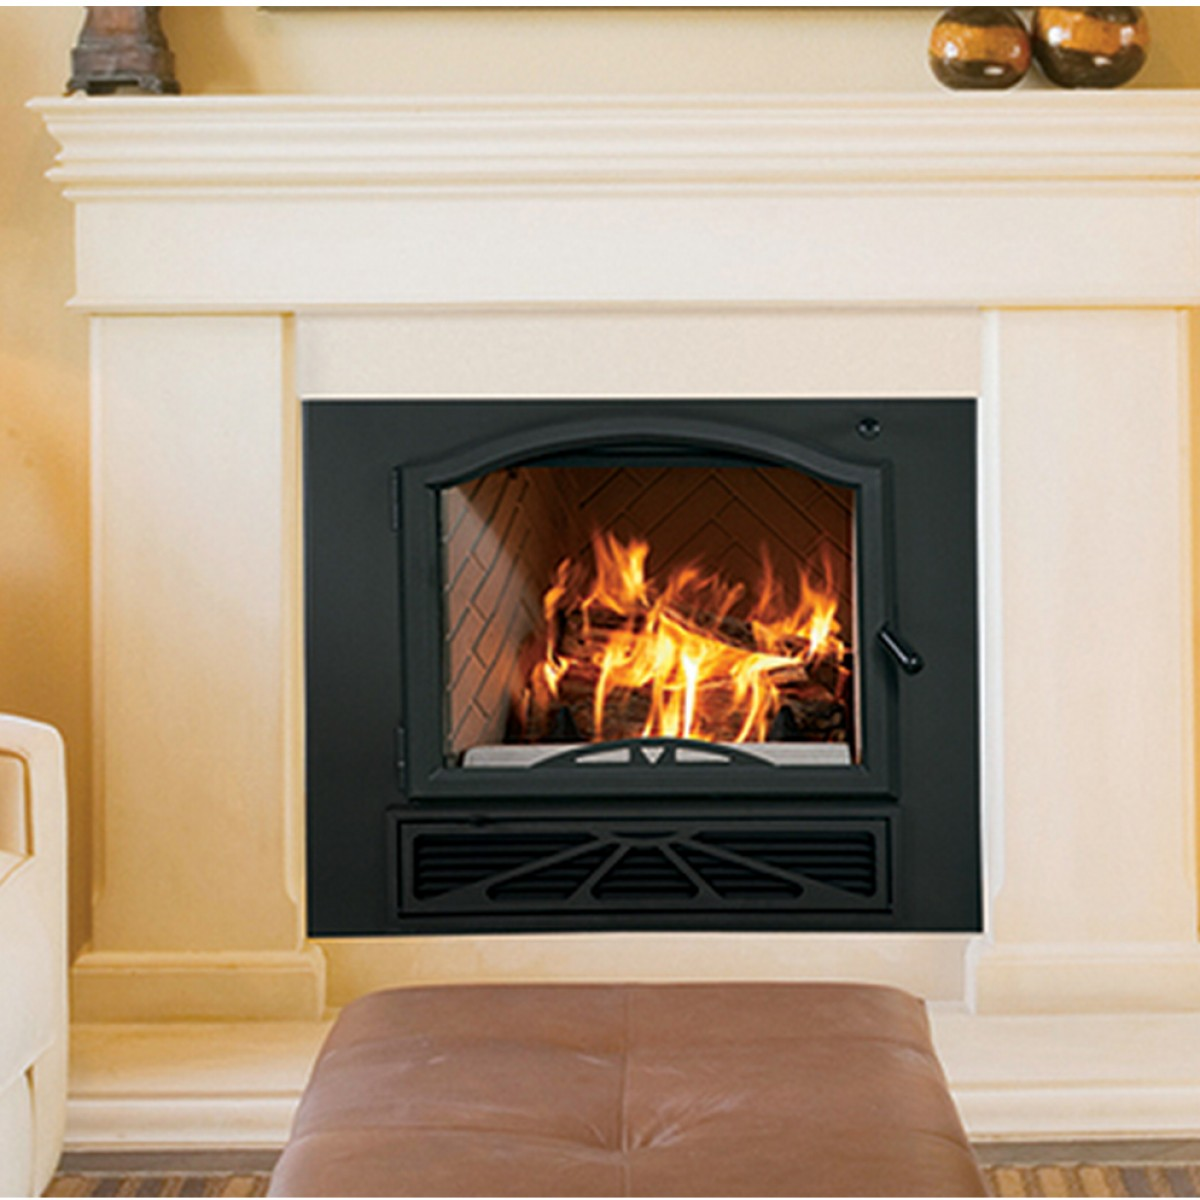 Ihp superior wrt wct2000 wood burning fireplace for New construction wood burning fireplace